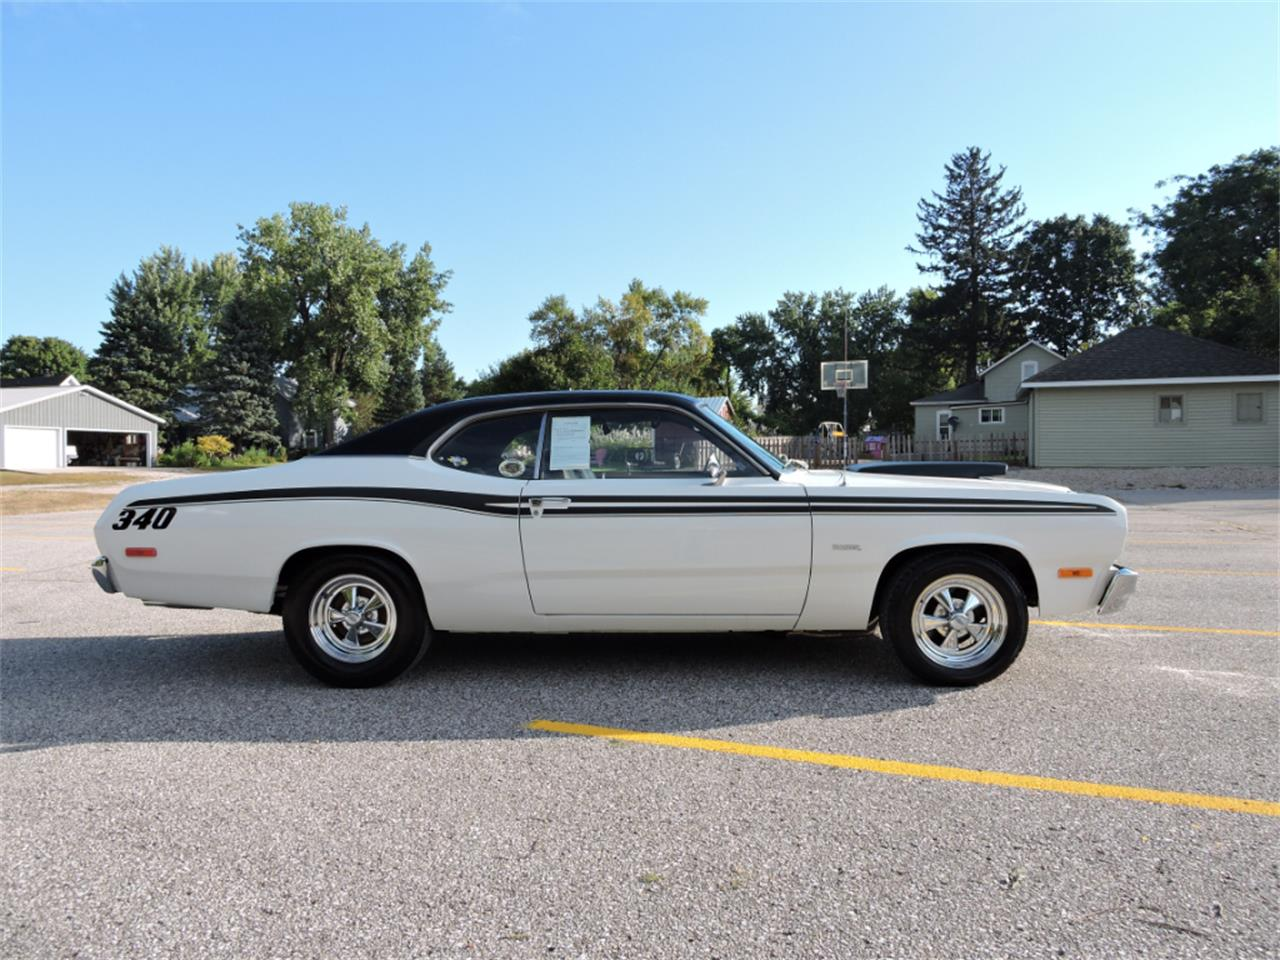 1973 Plymouth Duster for sale in Greene, IA – photo 52